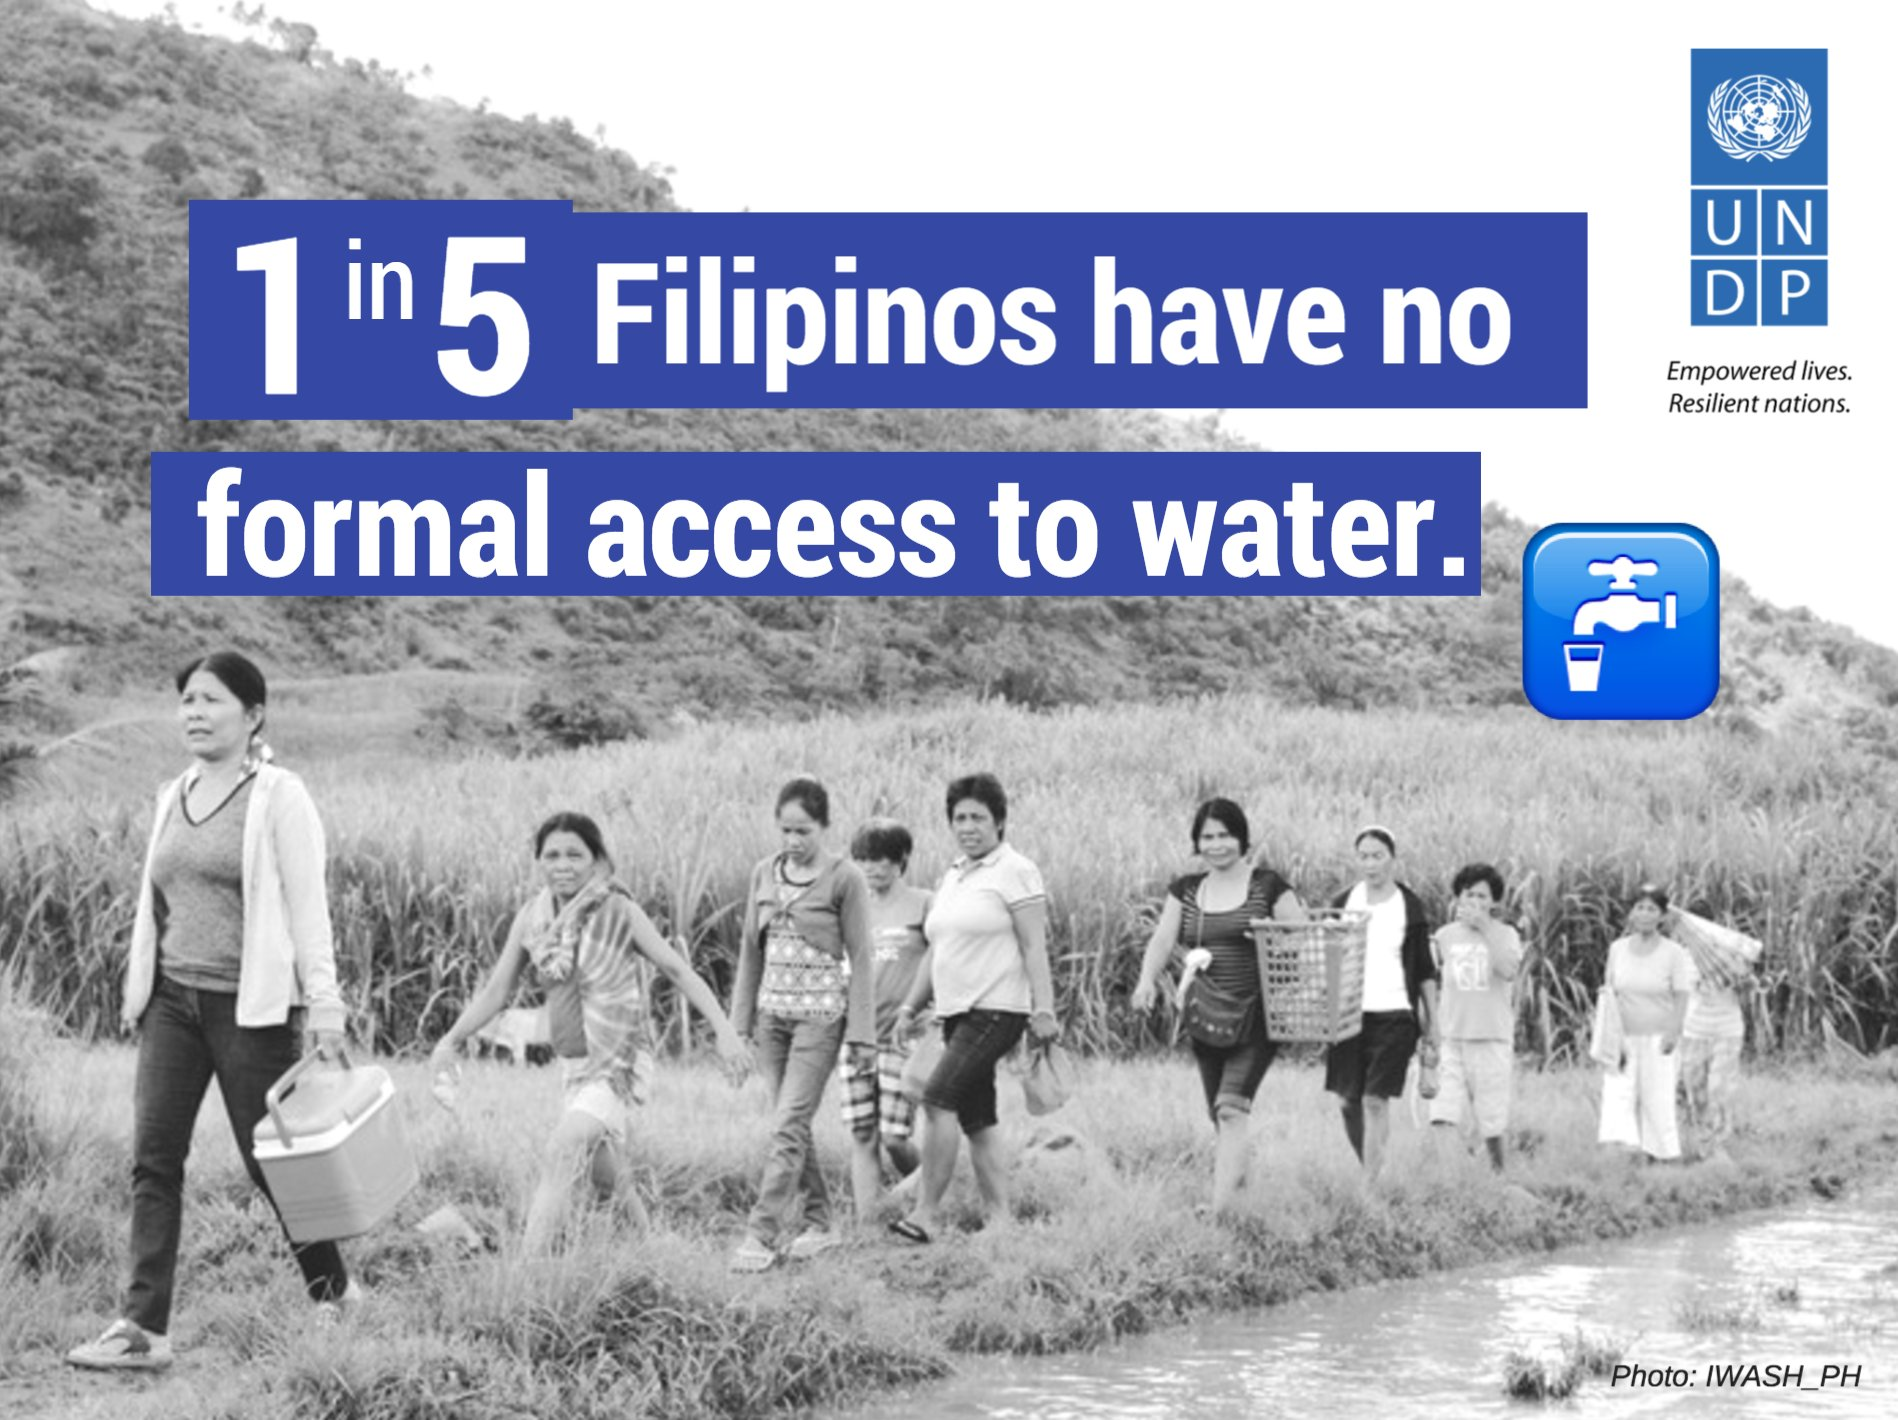 1 in 5 Filipinos do not have formal access to water. 🚱🏚️ Water is a precious resource we should not waste. #WorldWaterDay https://t.co/Z1DlSHv4QJ